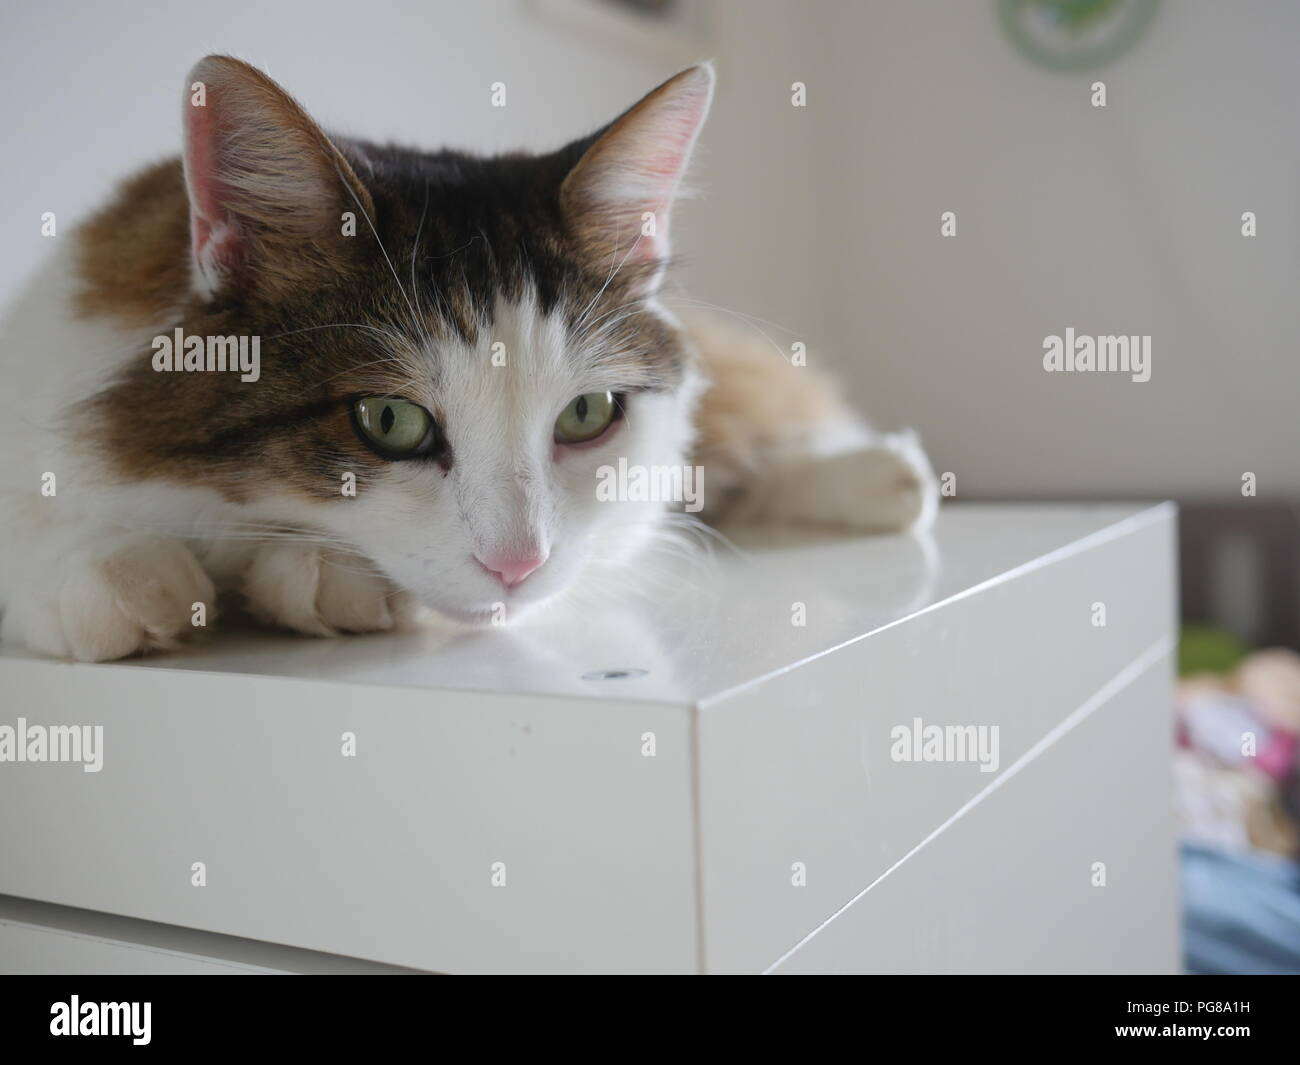 Portrait of cute white and brown cat lying on table at home. - Stock Image